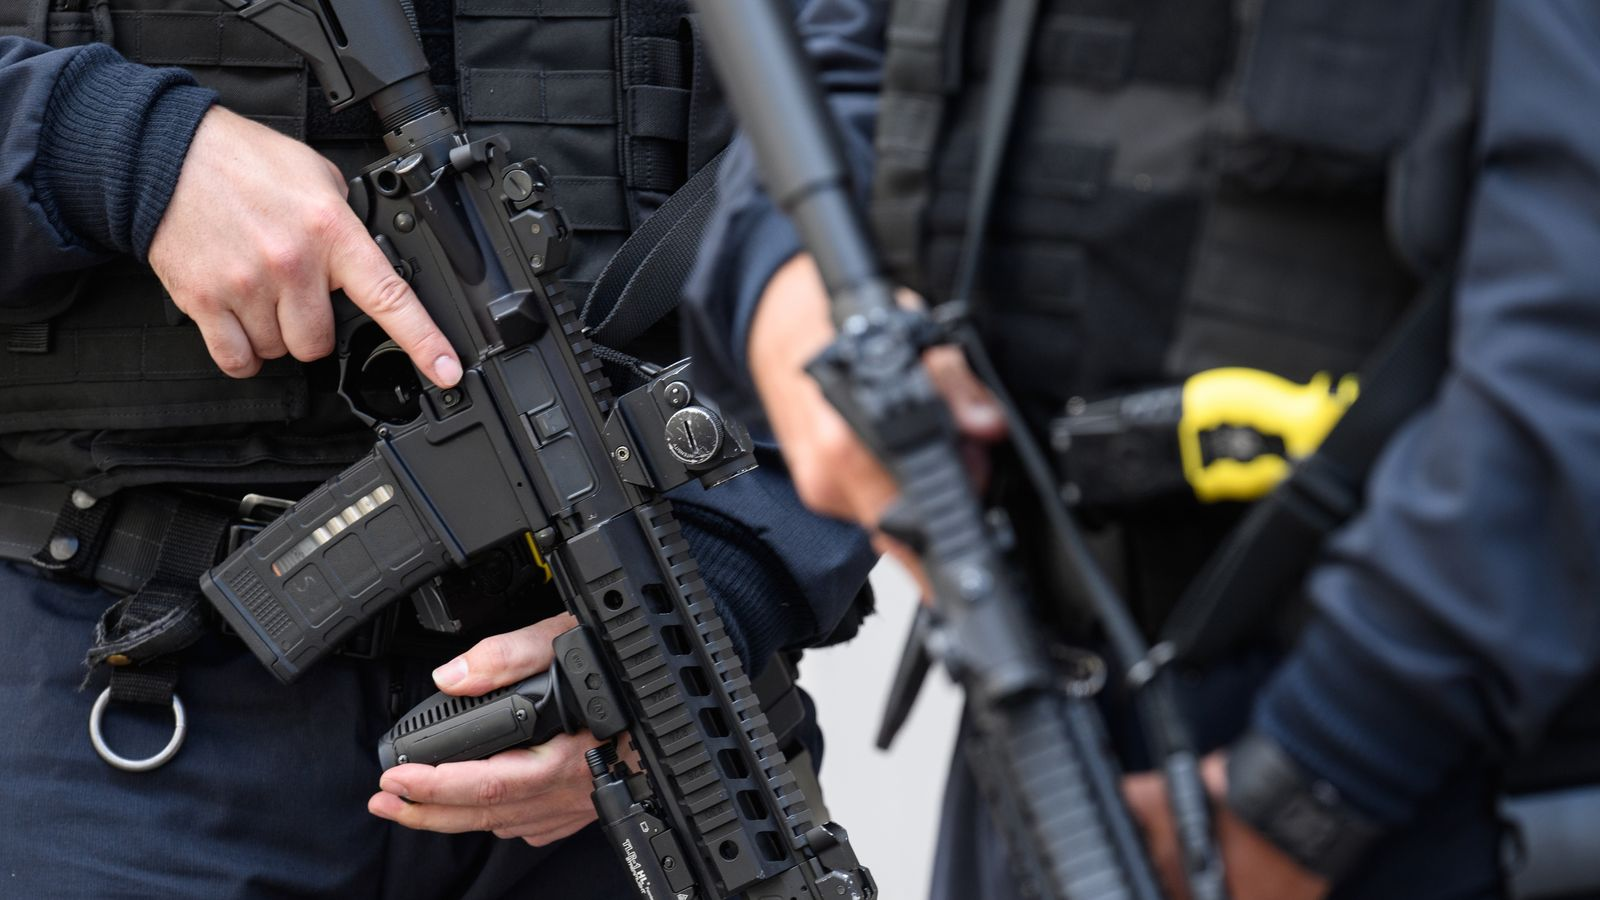 Armed police following the UK terror attack